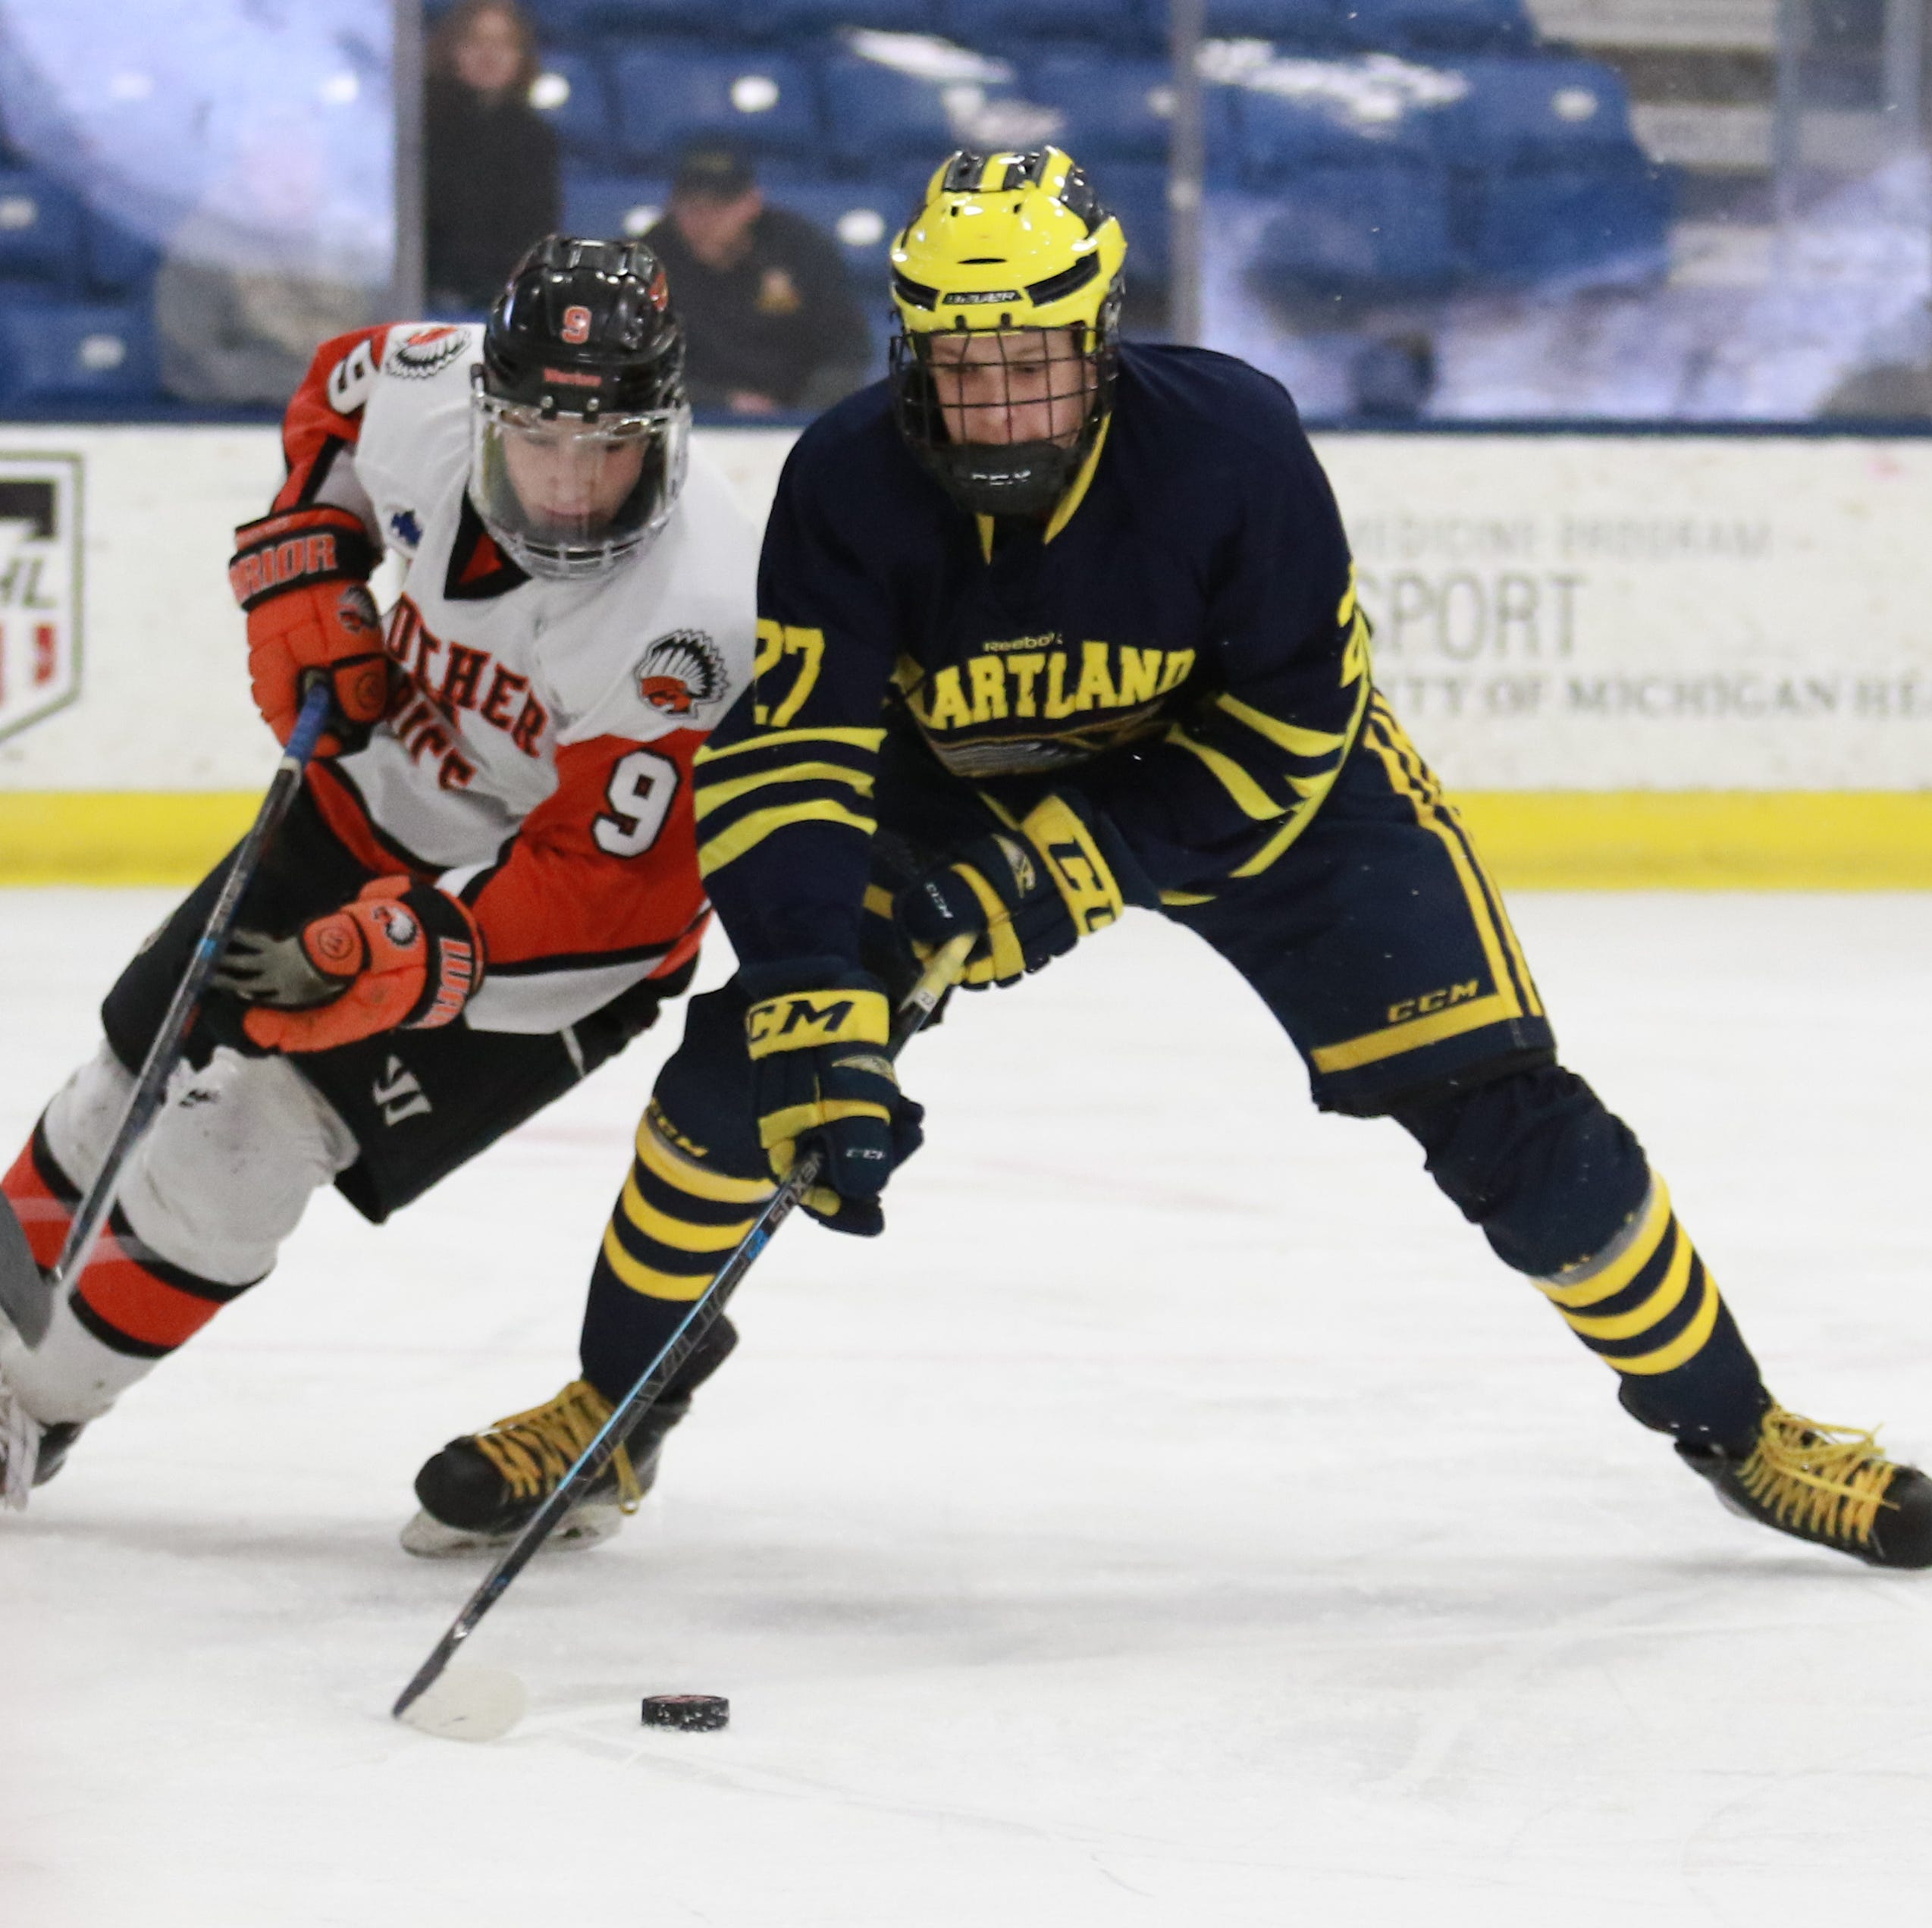 Hartland one win from state hockey repeat after dominating Birmingham Brother Rice